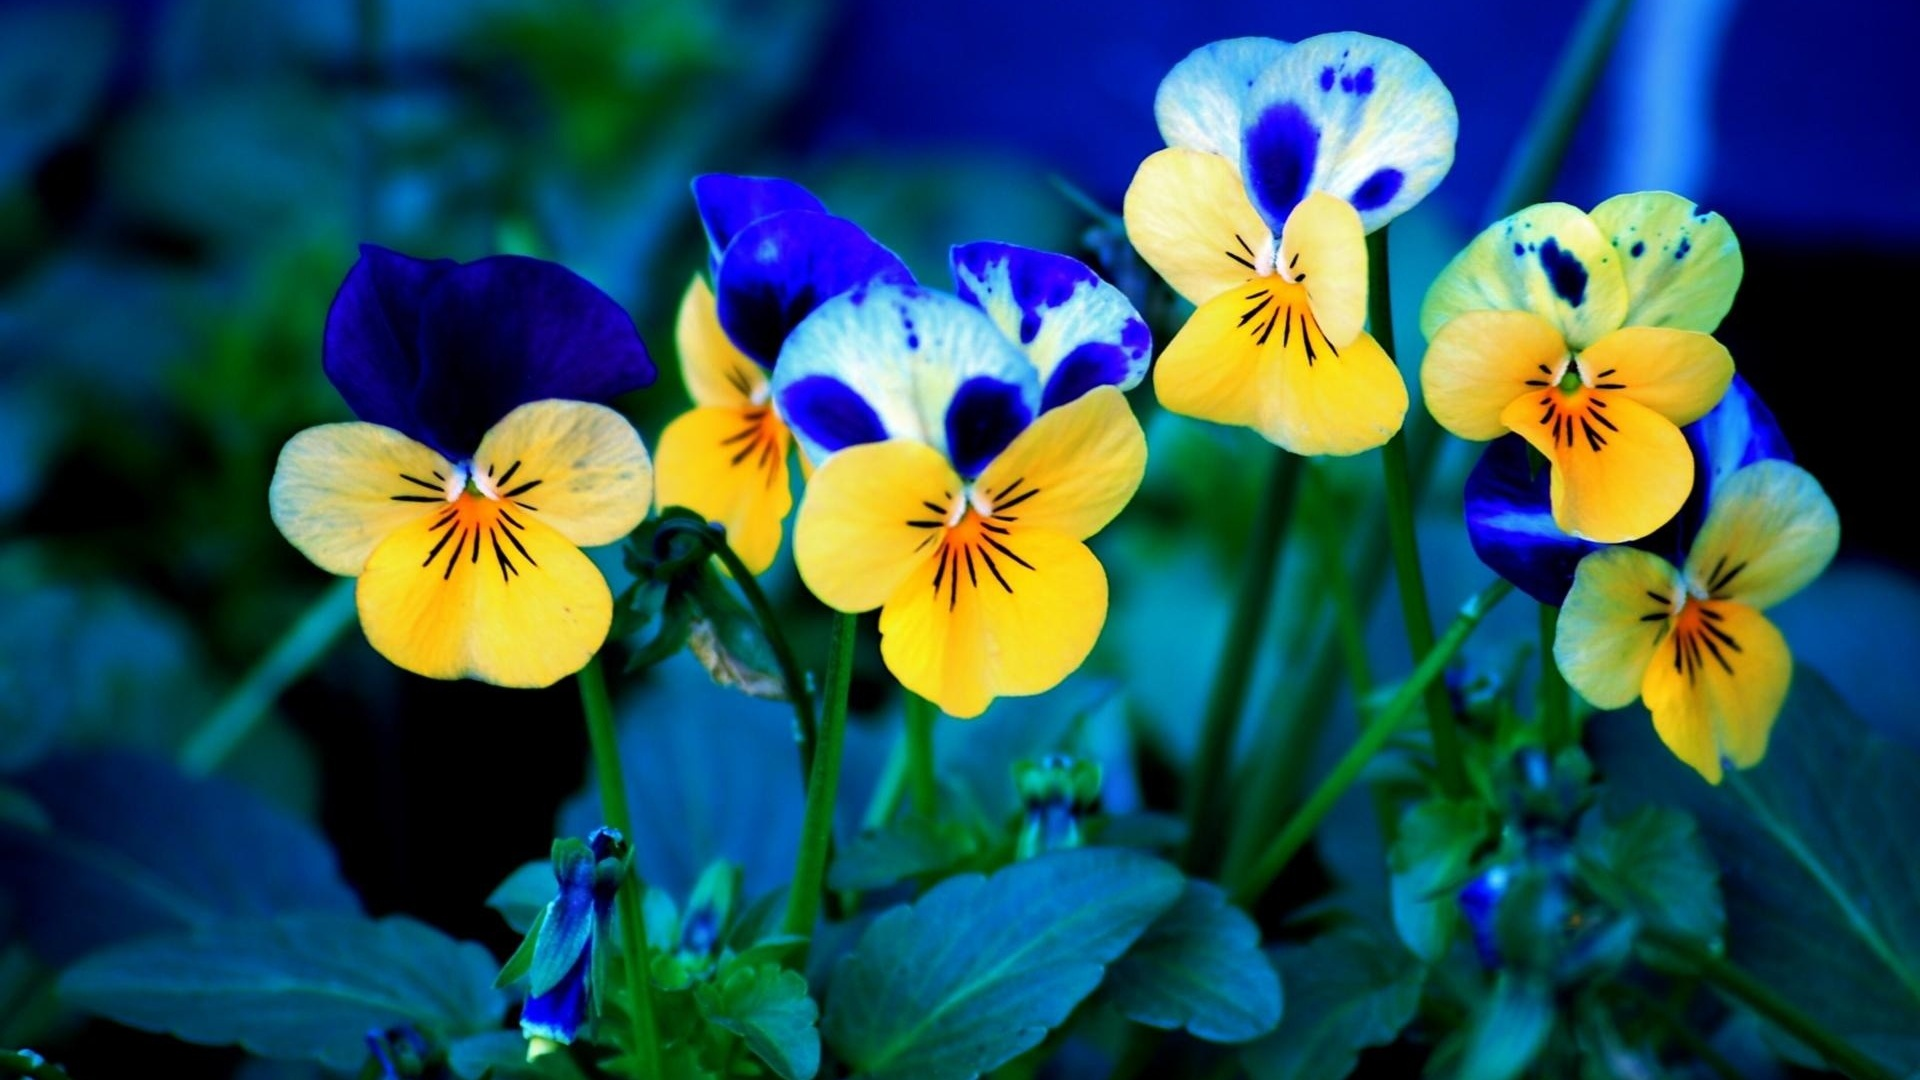 spring flowers backgrounds #6